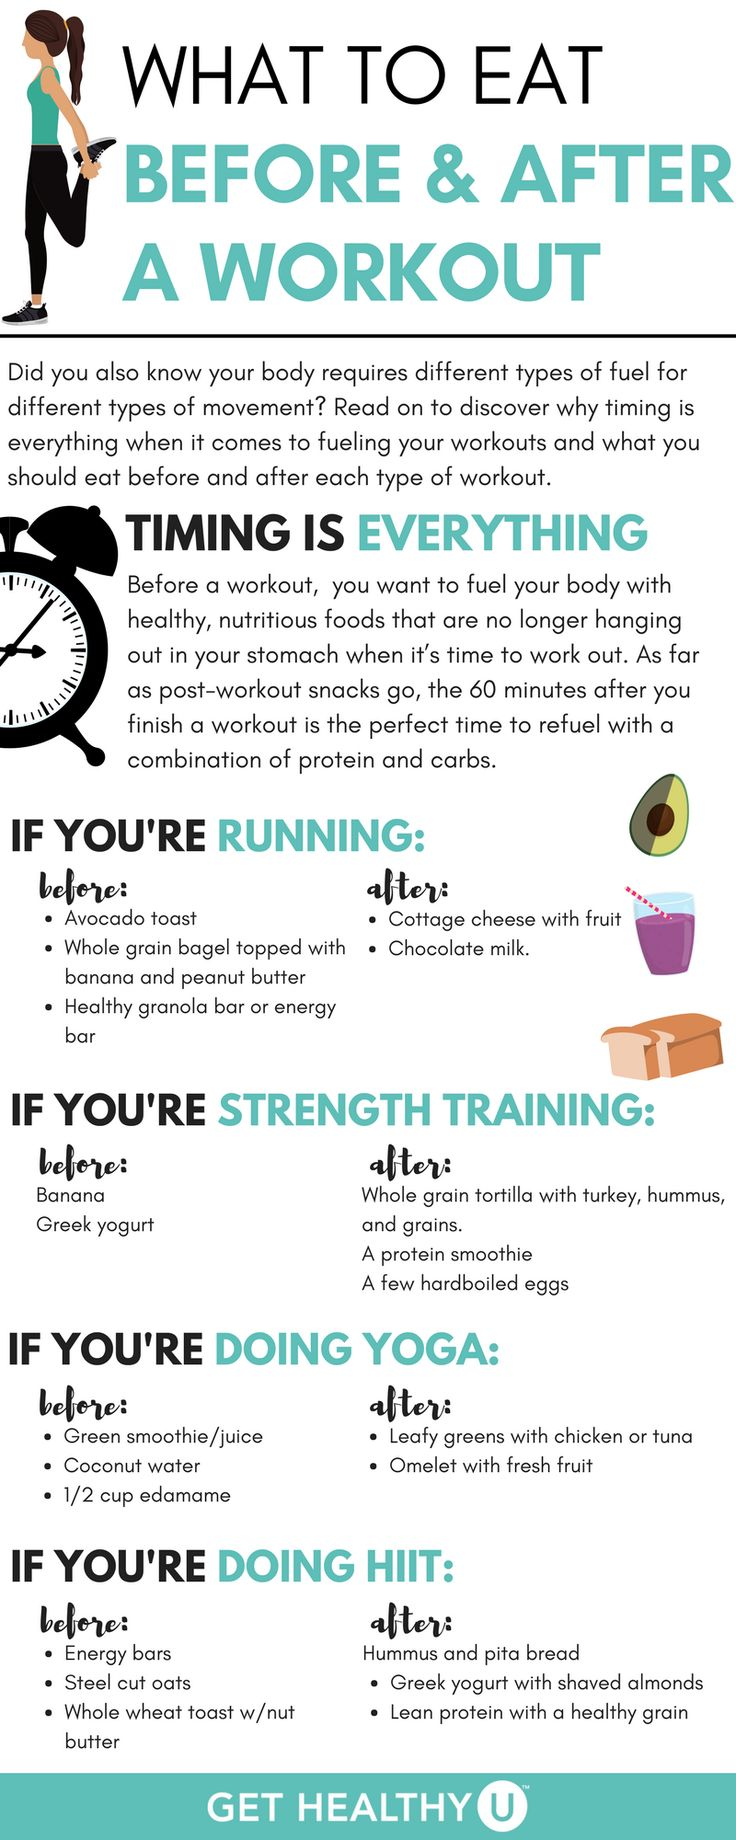 Best 25+ Eating after workout ideas on Pinterest | After workout ...